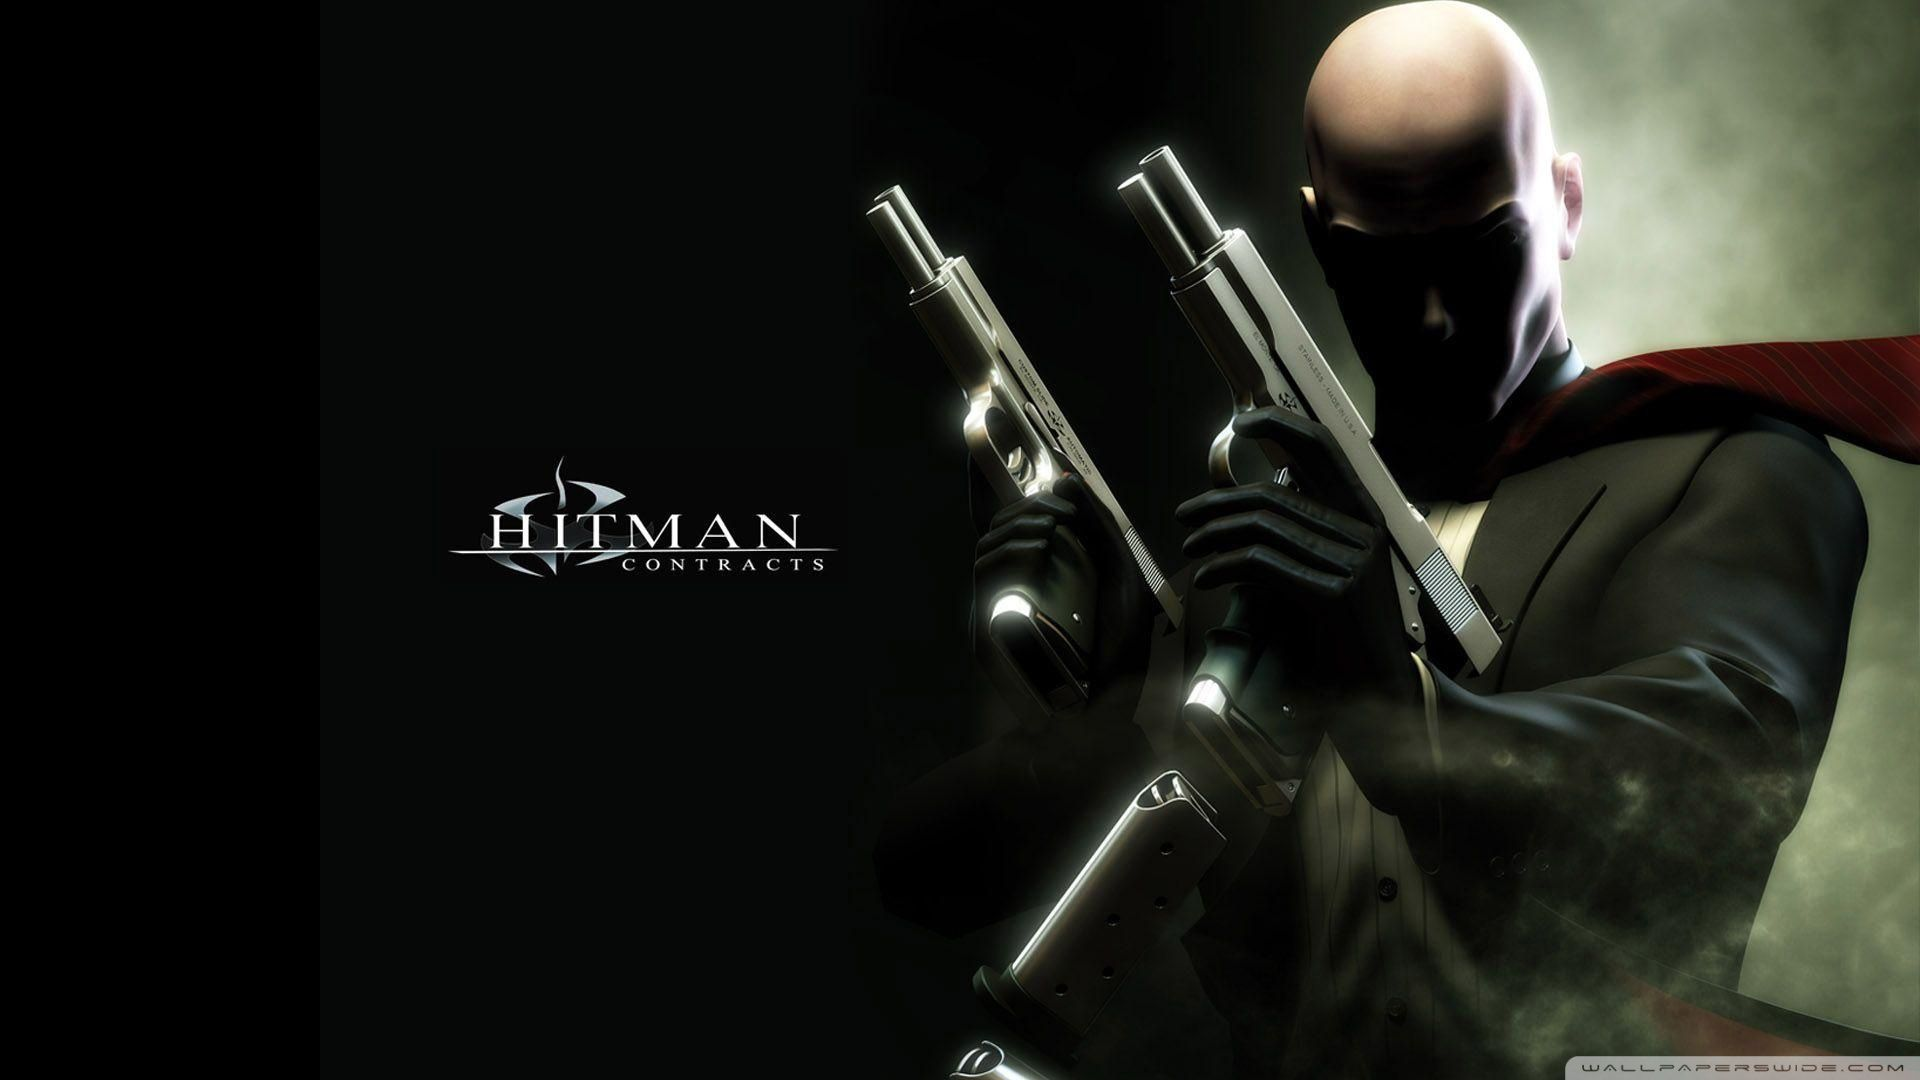 1920x1080 Hitman Game Art HD Games 4k Wallpapers Images Backgrounds